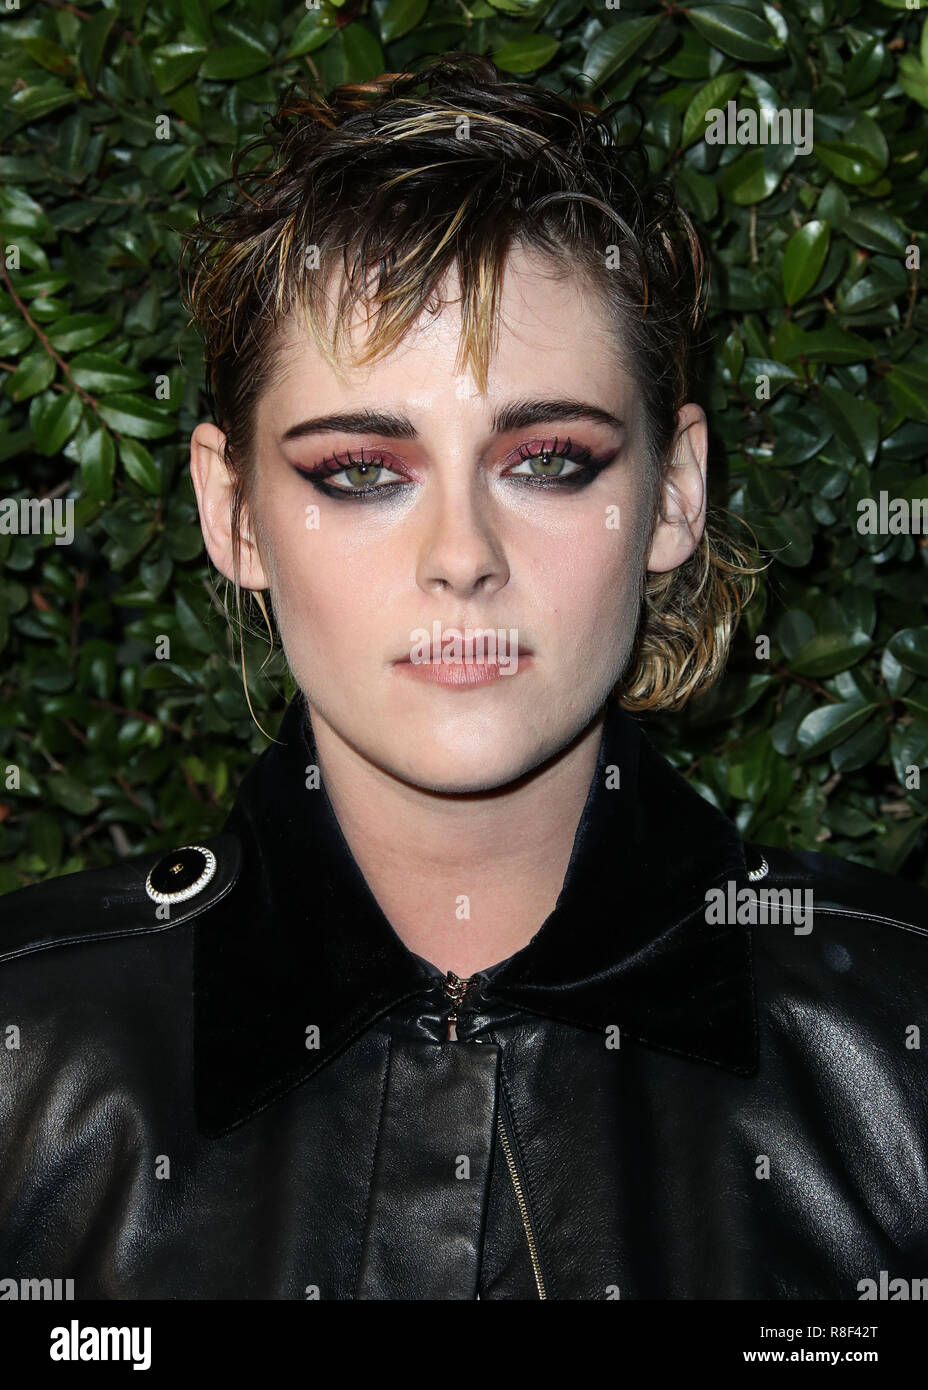 Kristen stewart charles finch and chanel annual pre oscar awards dinner in beverly hills nudes (86 images)